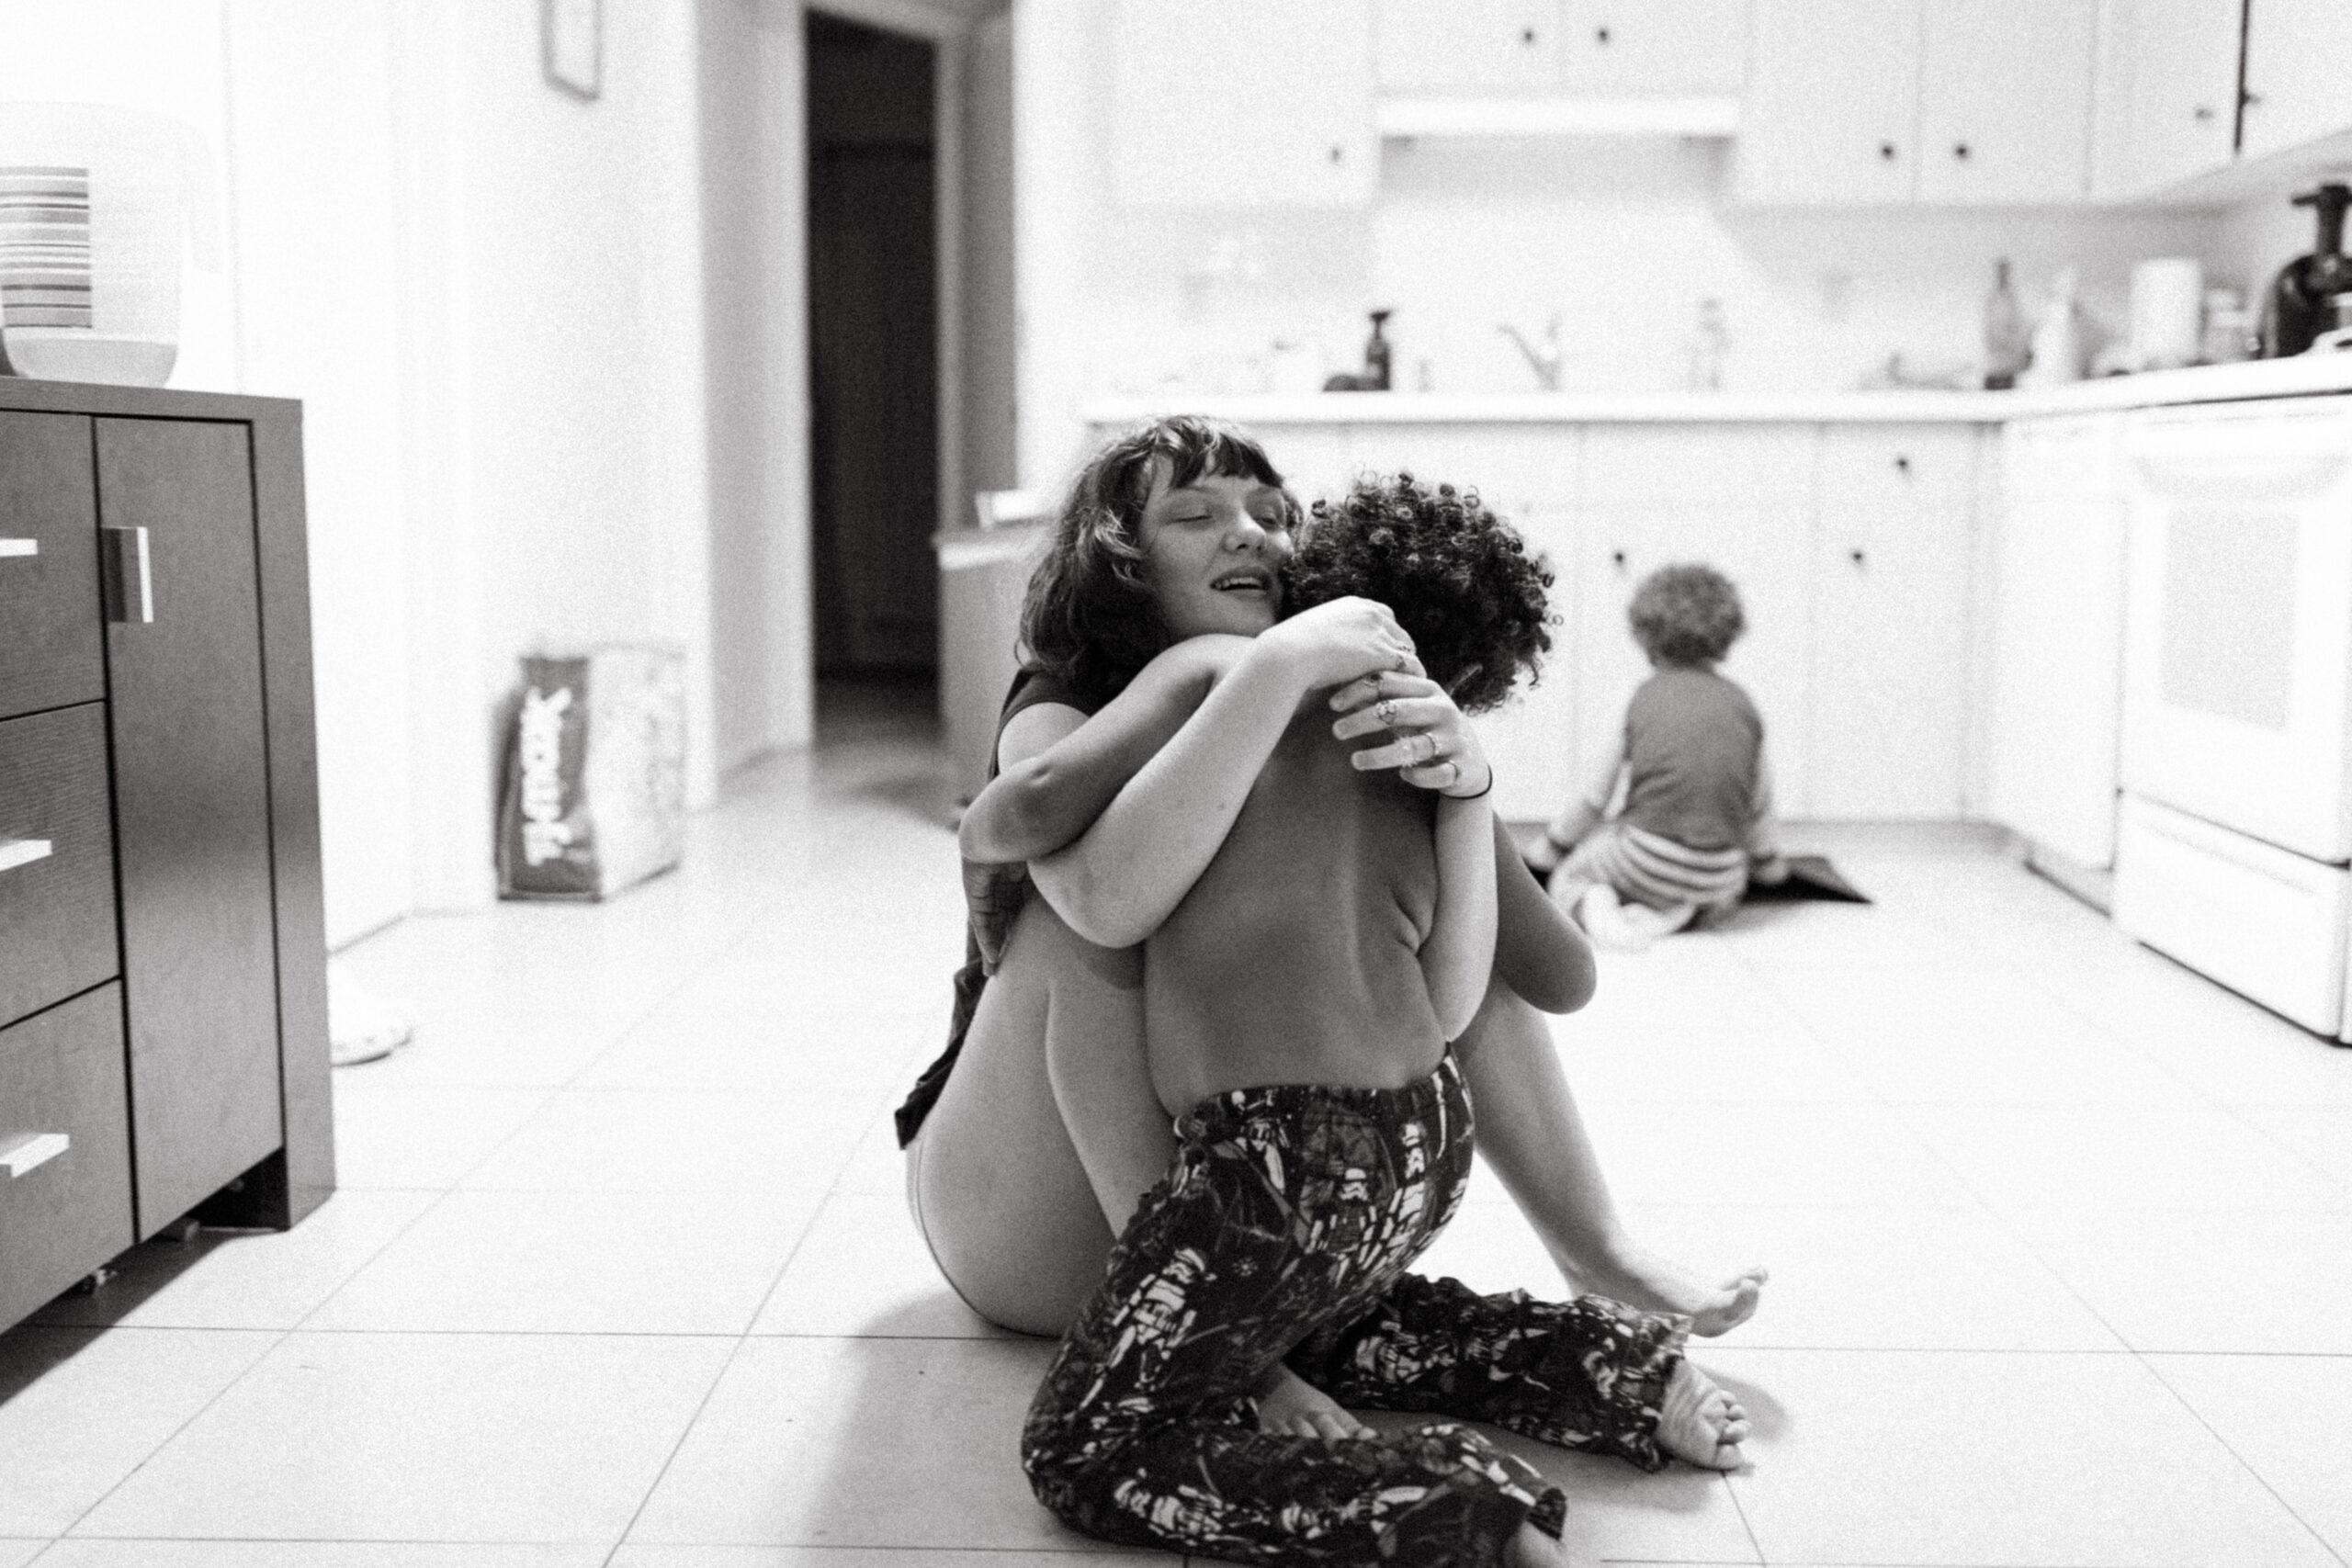 Sister hugs her brother on the kitchen floor